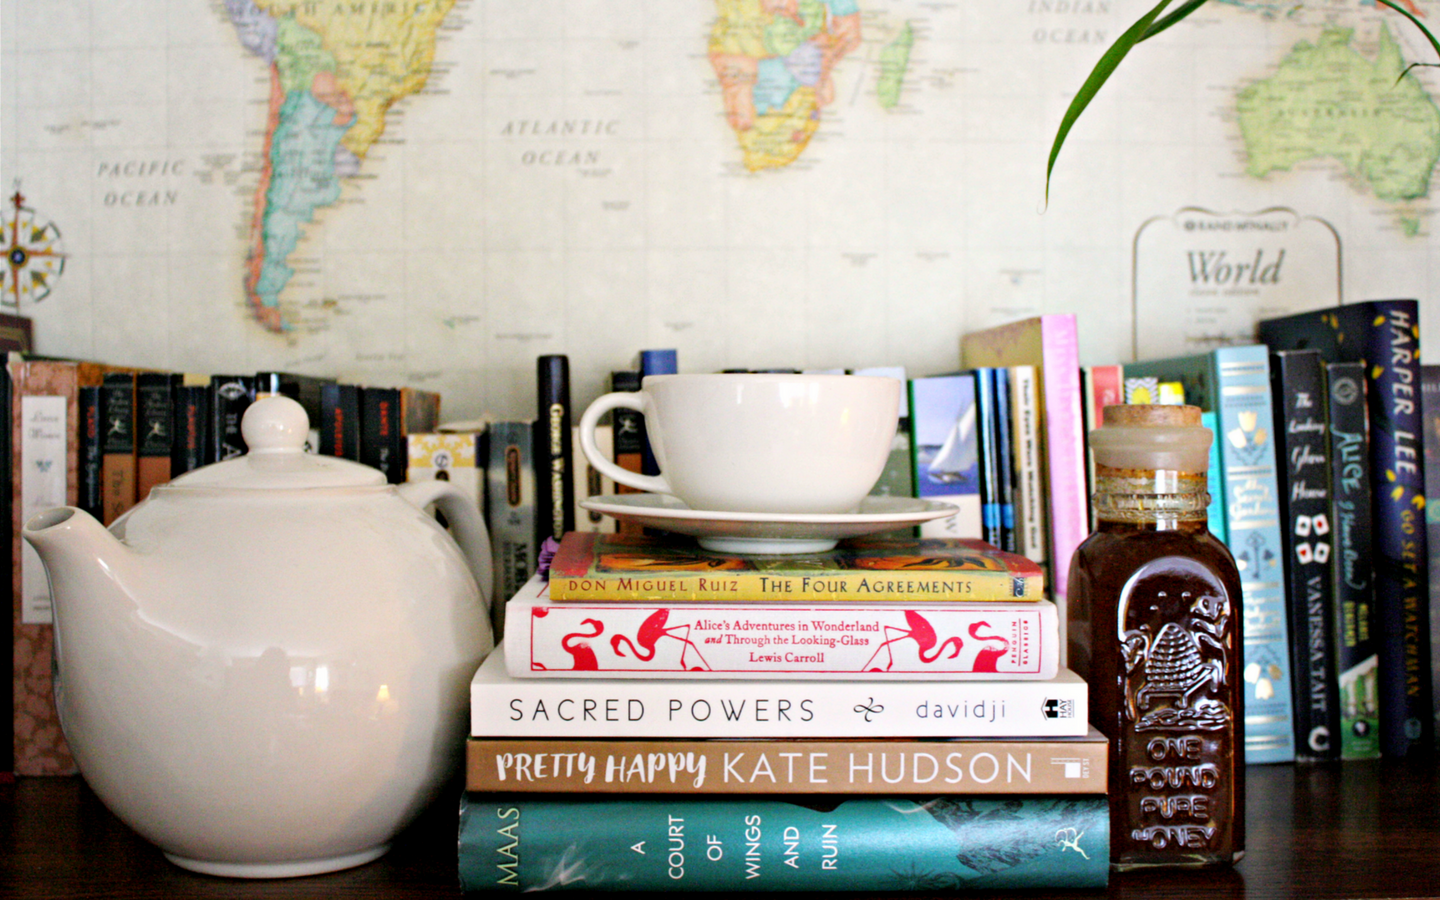 Spring Reading List, books, tea, map